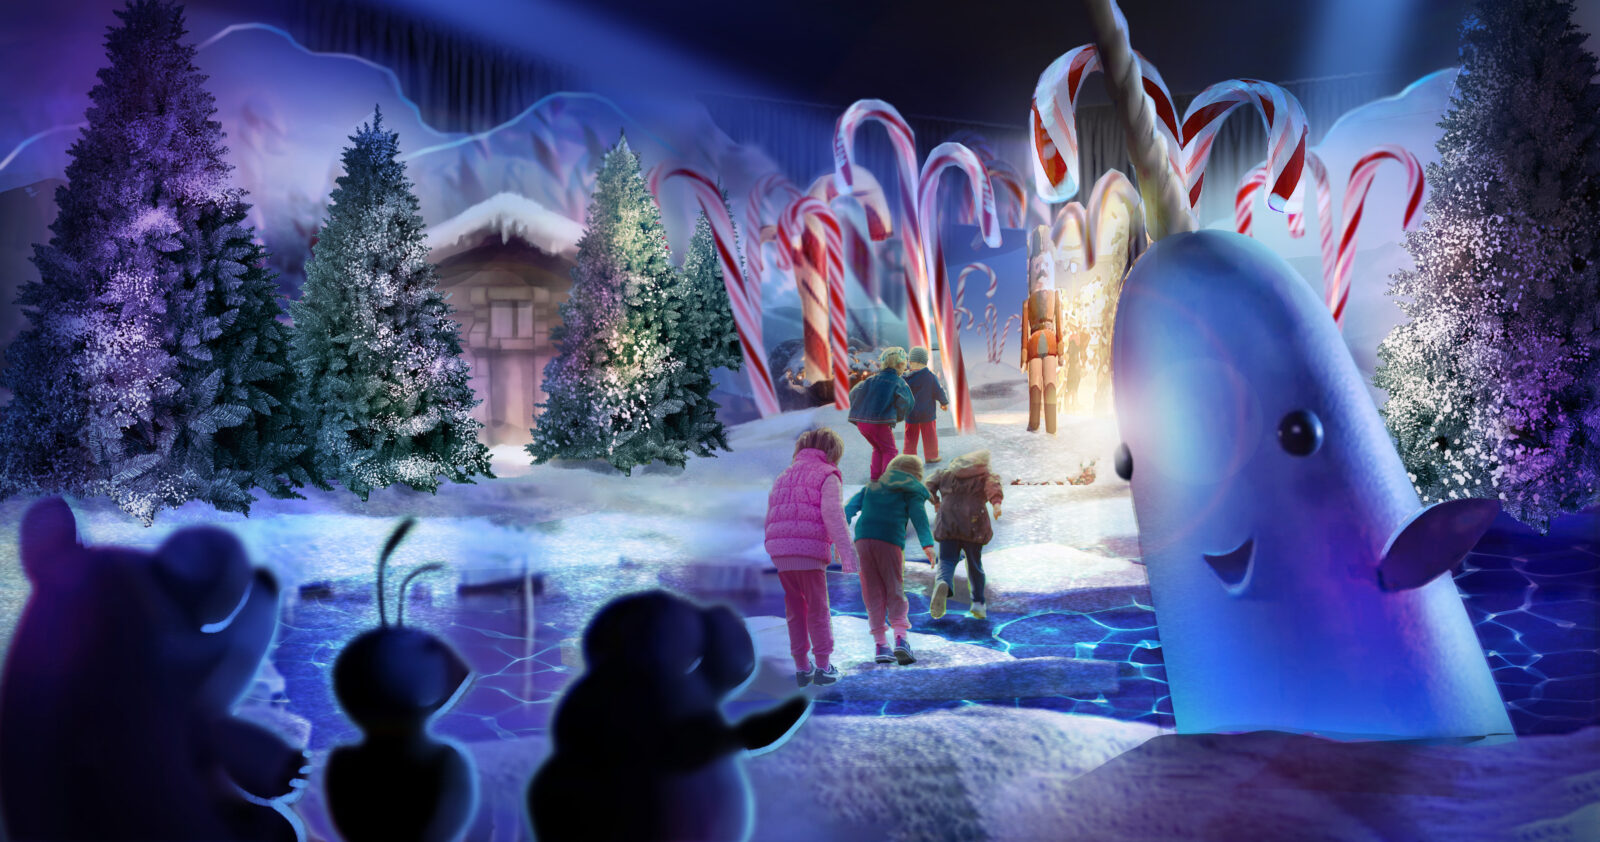 I Love Christmas Movies Gaylord Palms Resort Christmas 2020